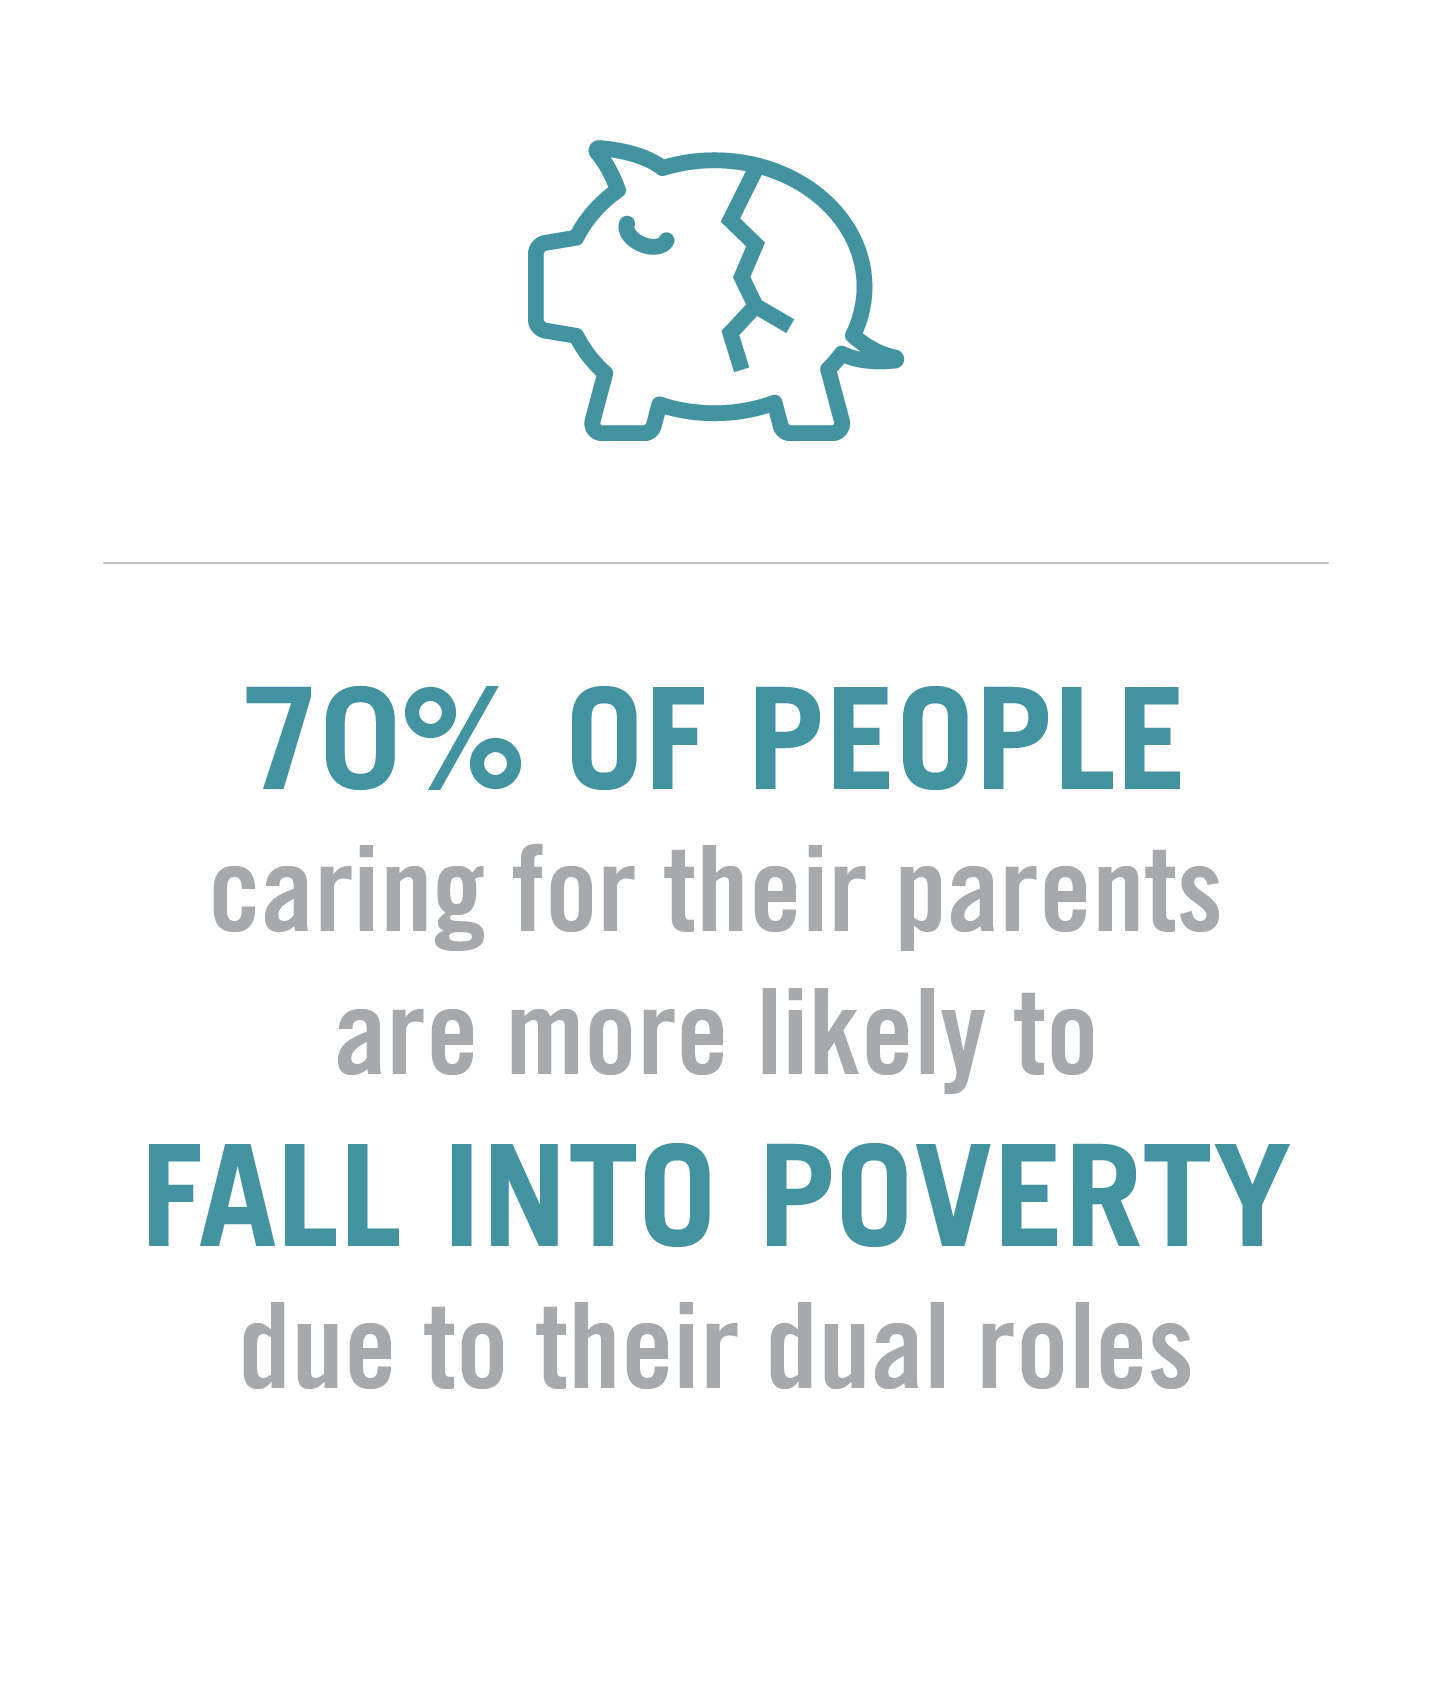 70 percent of people caring for their parents are more likely to fall into poverty due to their dual roles.